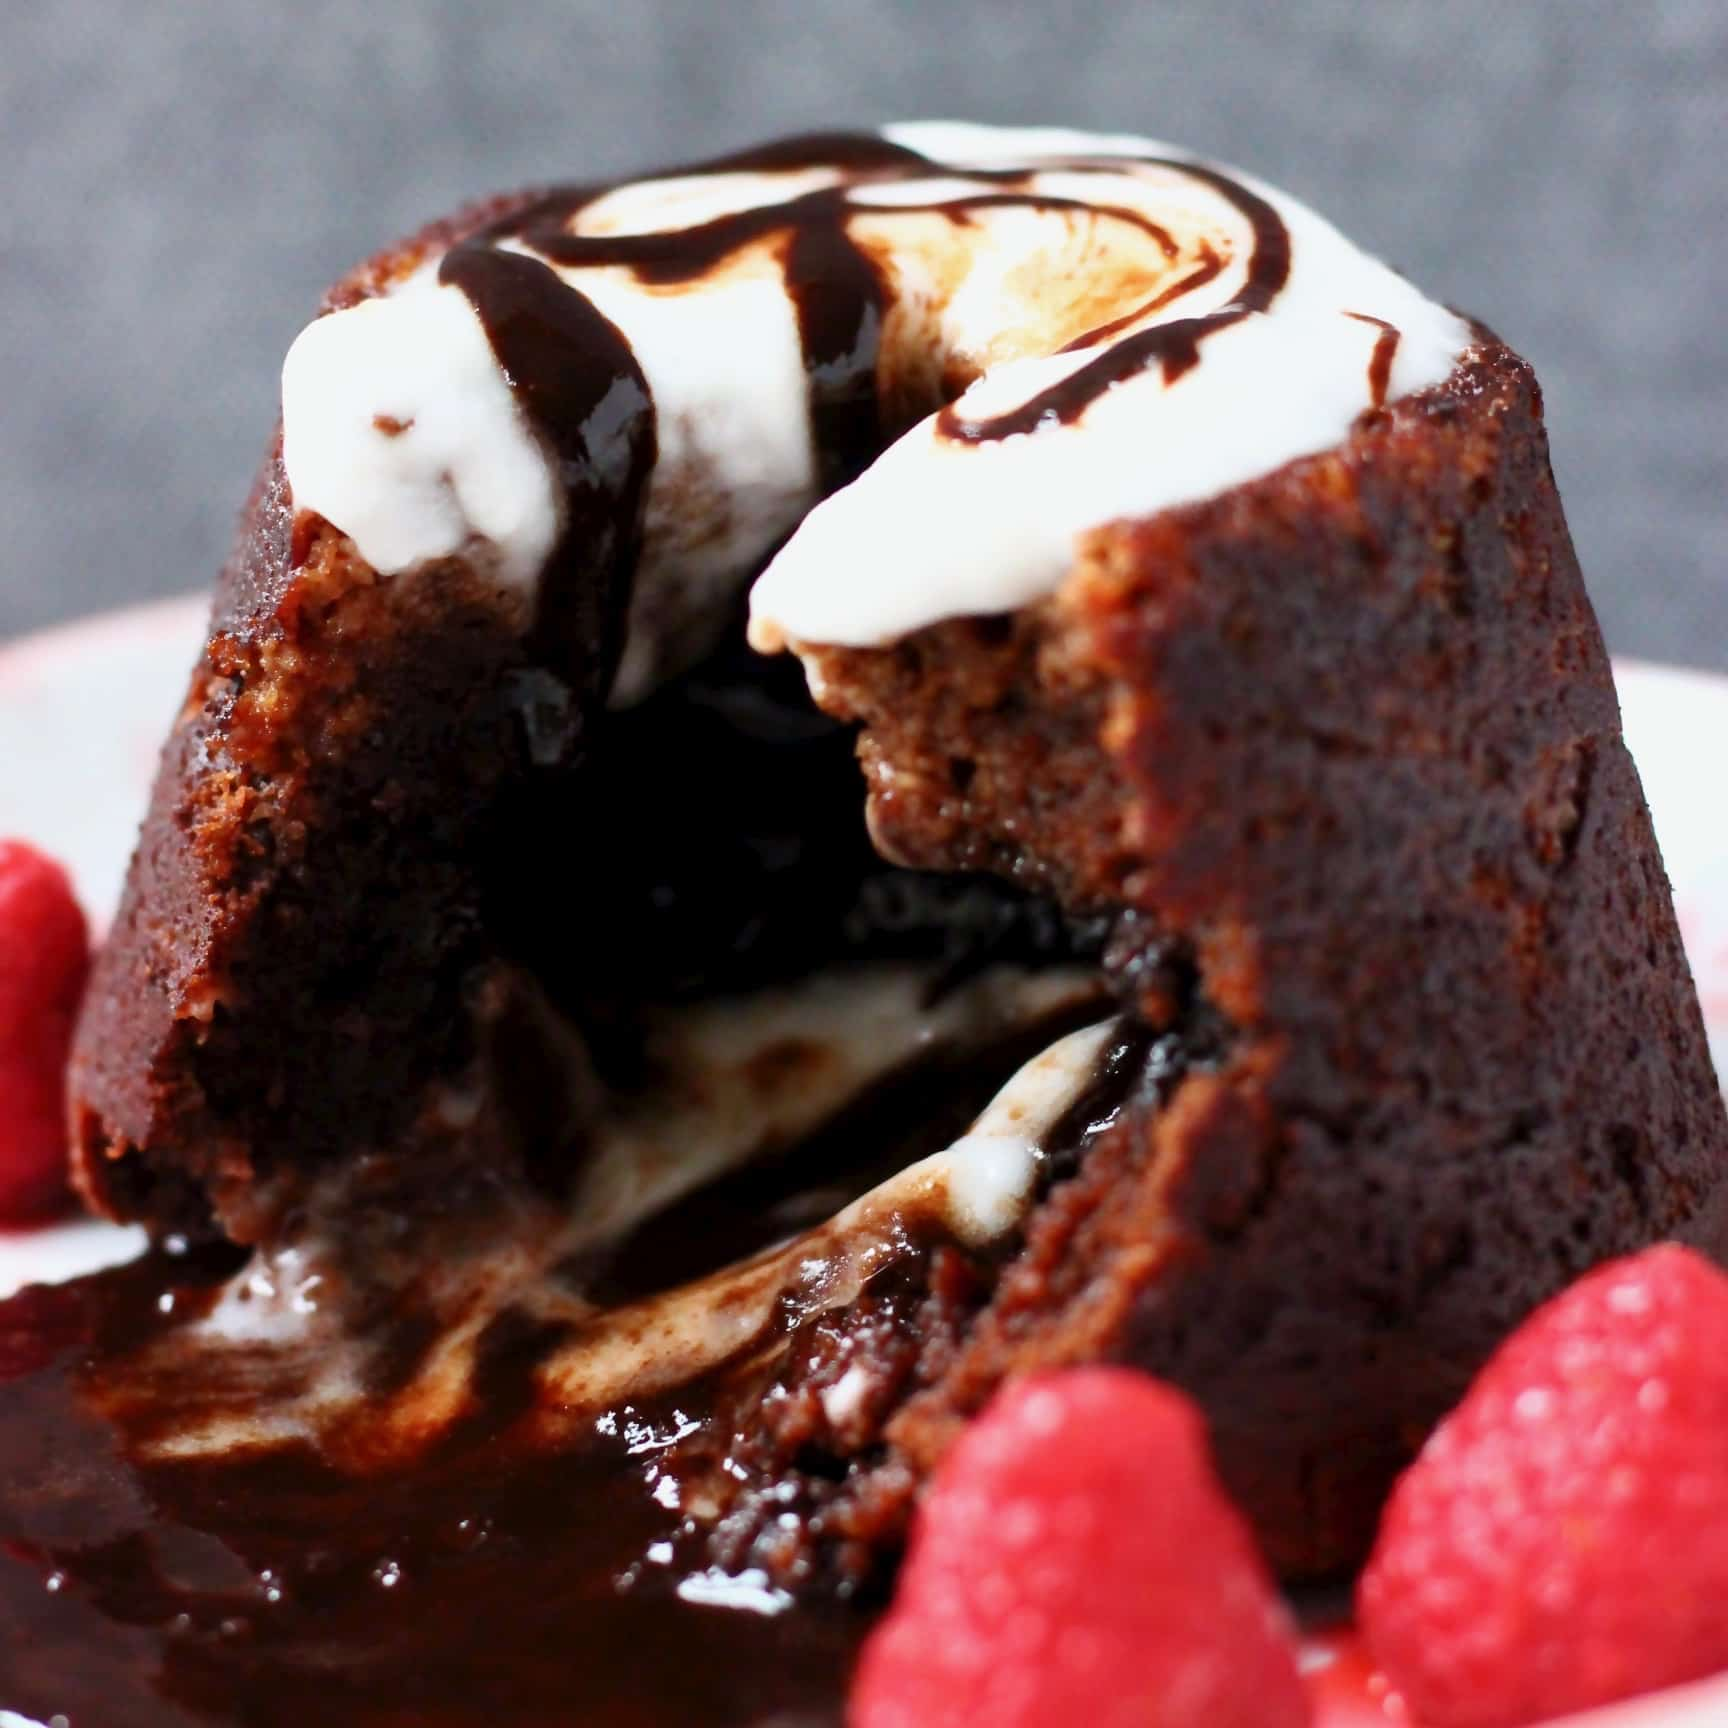 Chocolate lava cake on a plate with chocolate sauce flowing out of it topped with white cream and decorated with raspberries against a grey background